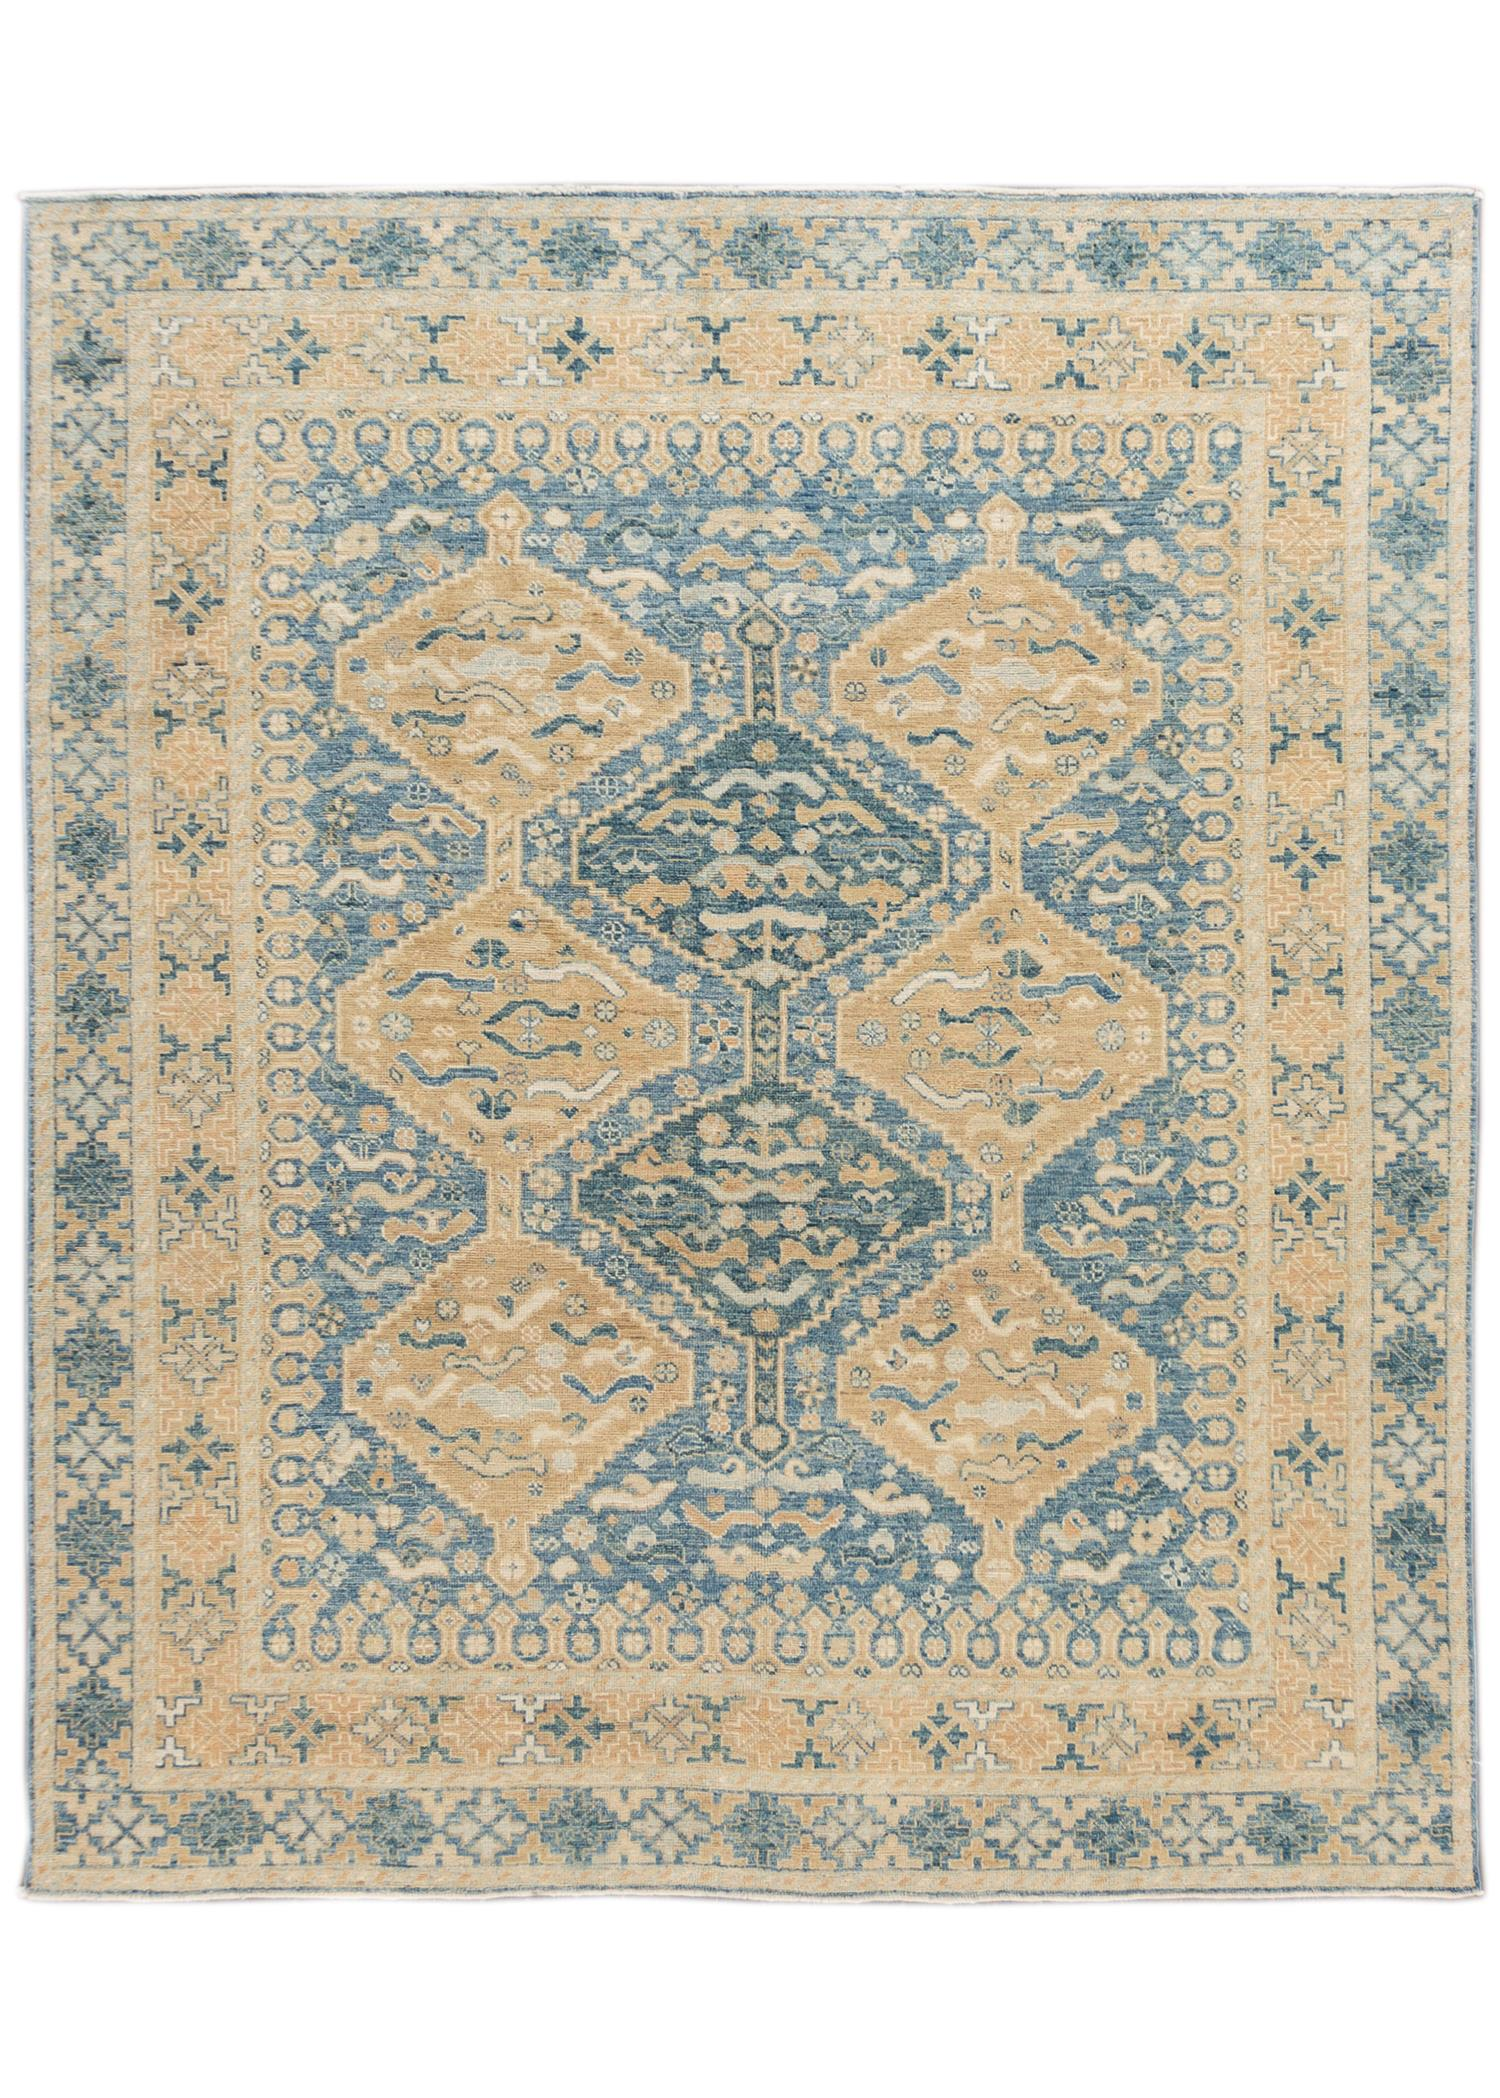 Contemporary Blue and Tan Oushak-Style Wool Area Rug 9' x 12'